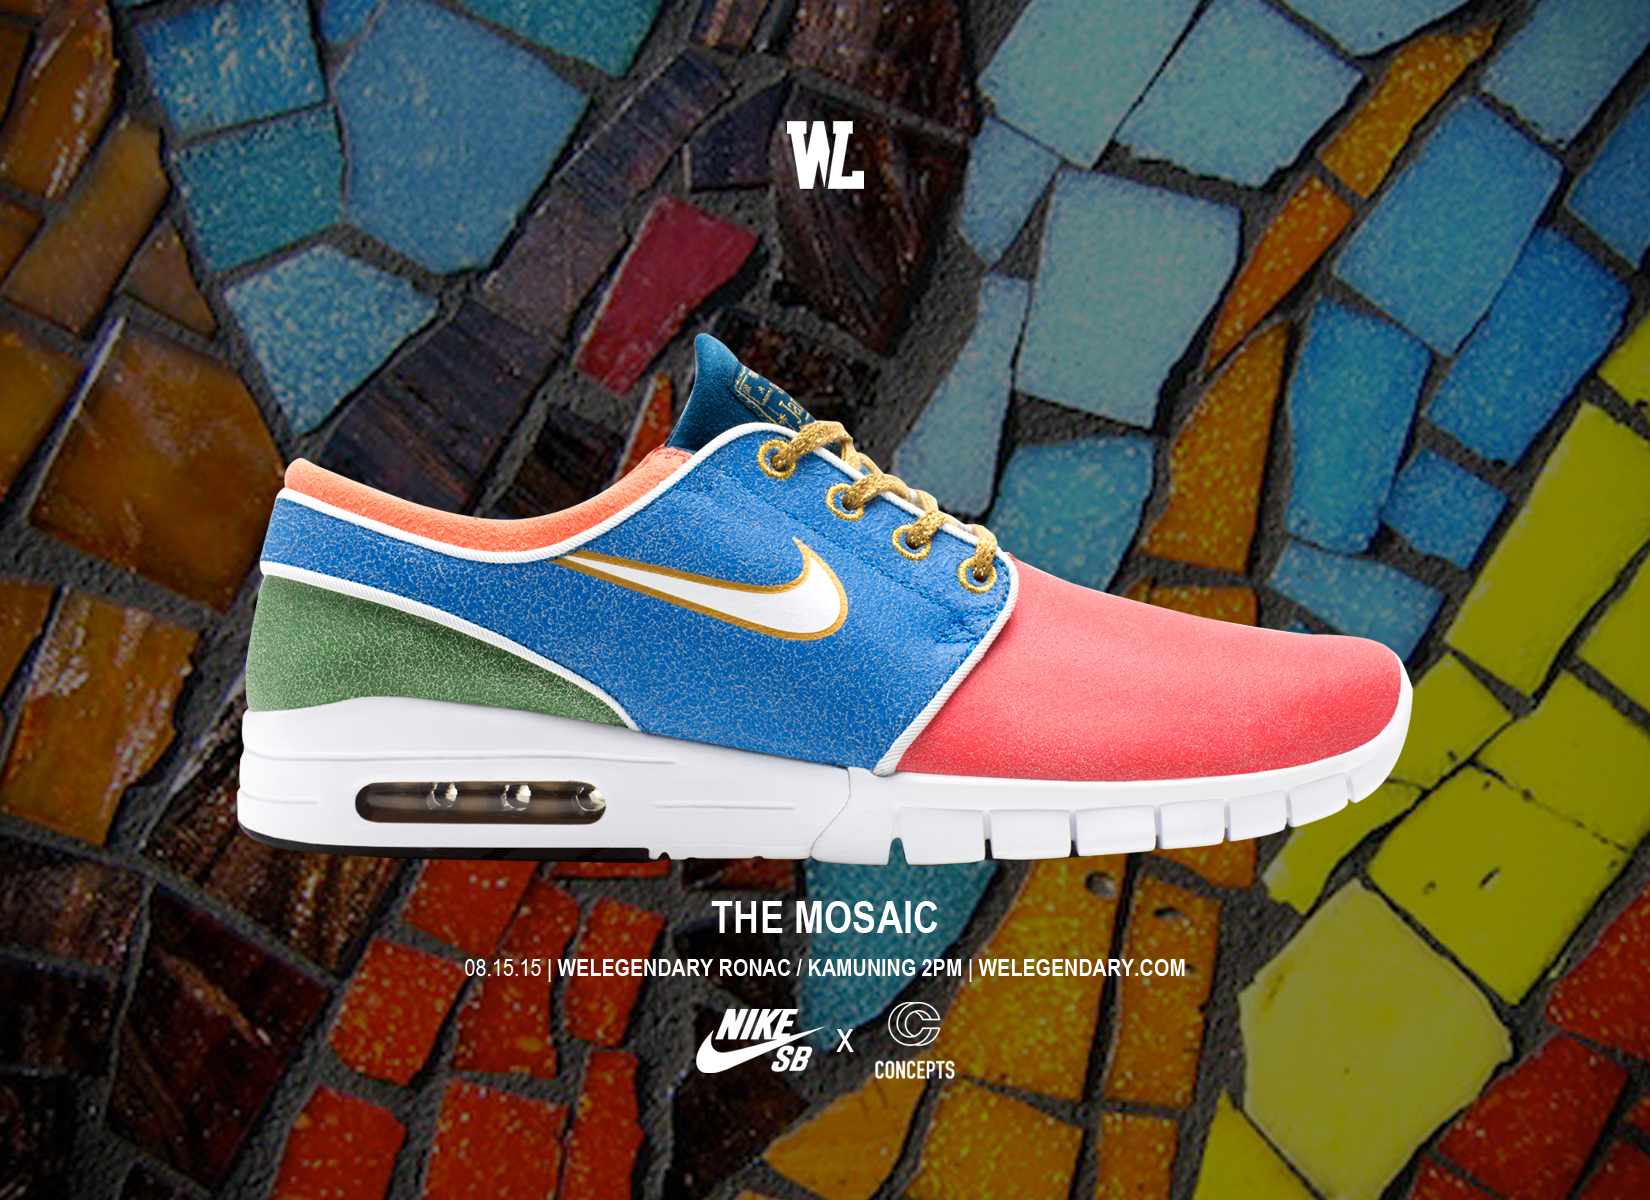 timeless design 0d9e6 86b66 weLegendary is dropping the Nike SB Janoski Max x Concepts  Mosaic ...